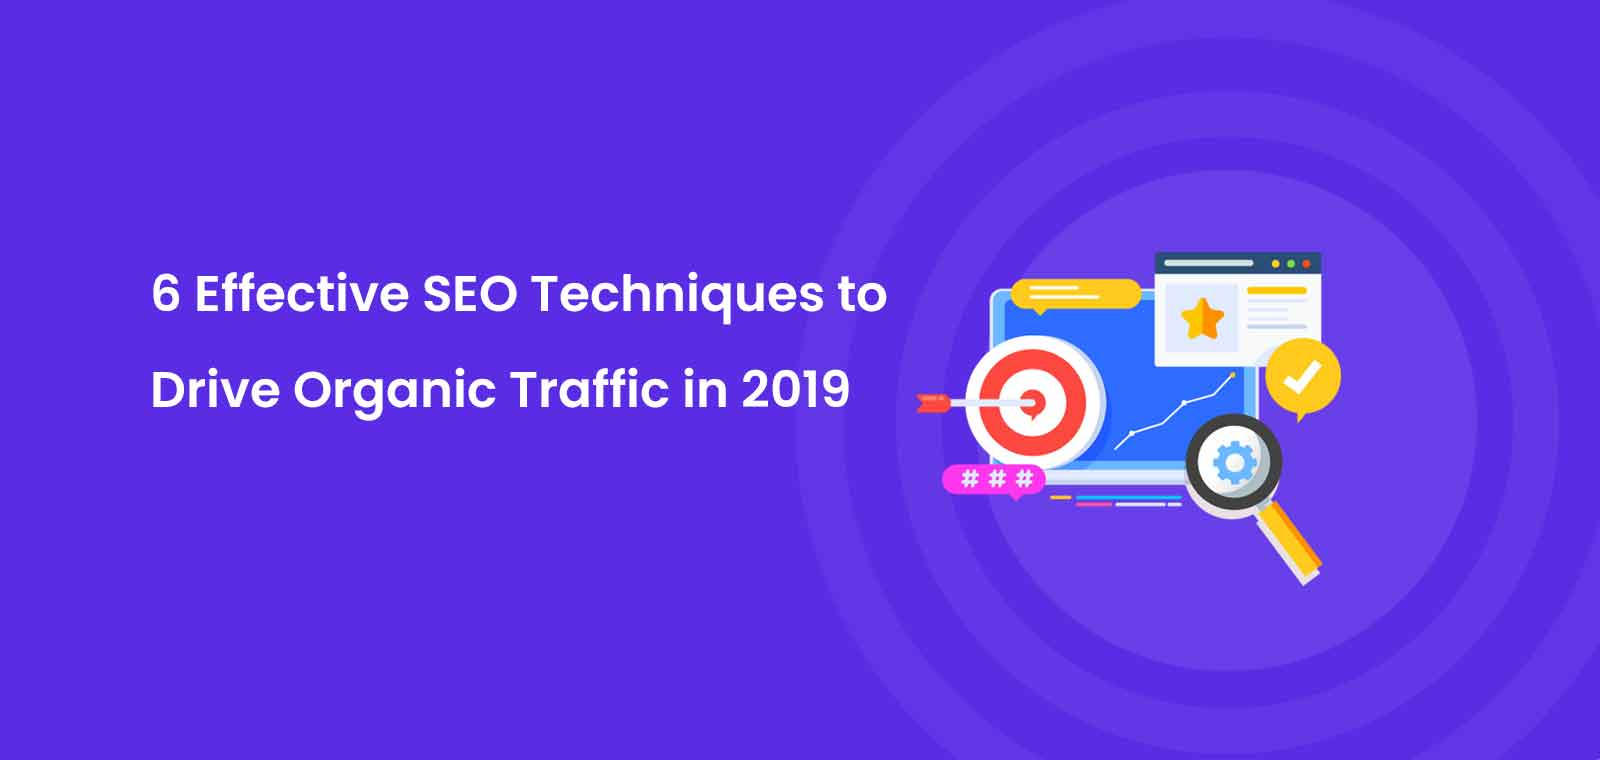 6 Effective SEO Techniques to Drive Organic Traffic in 2019